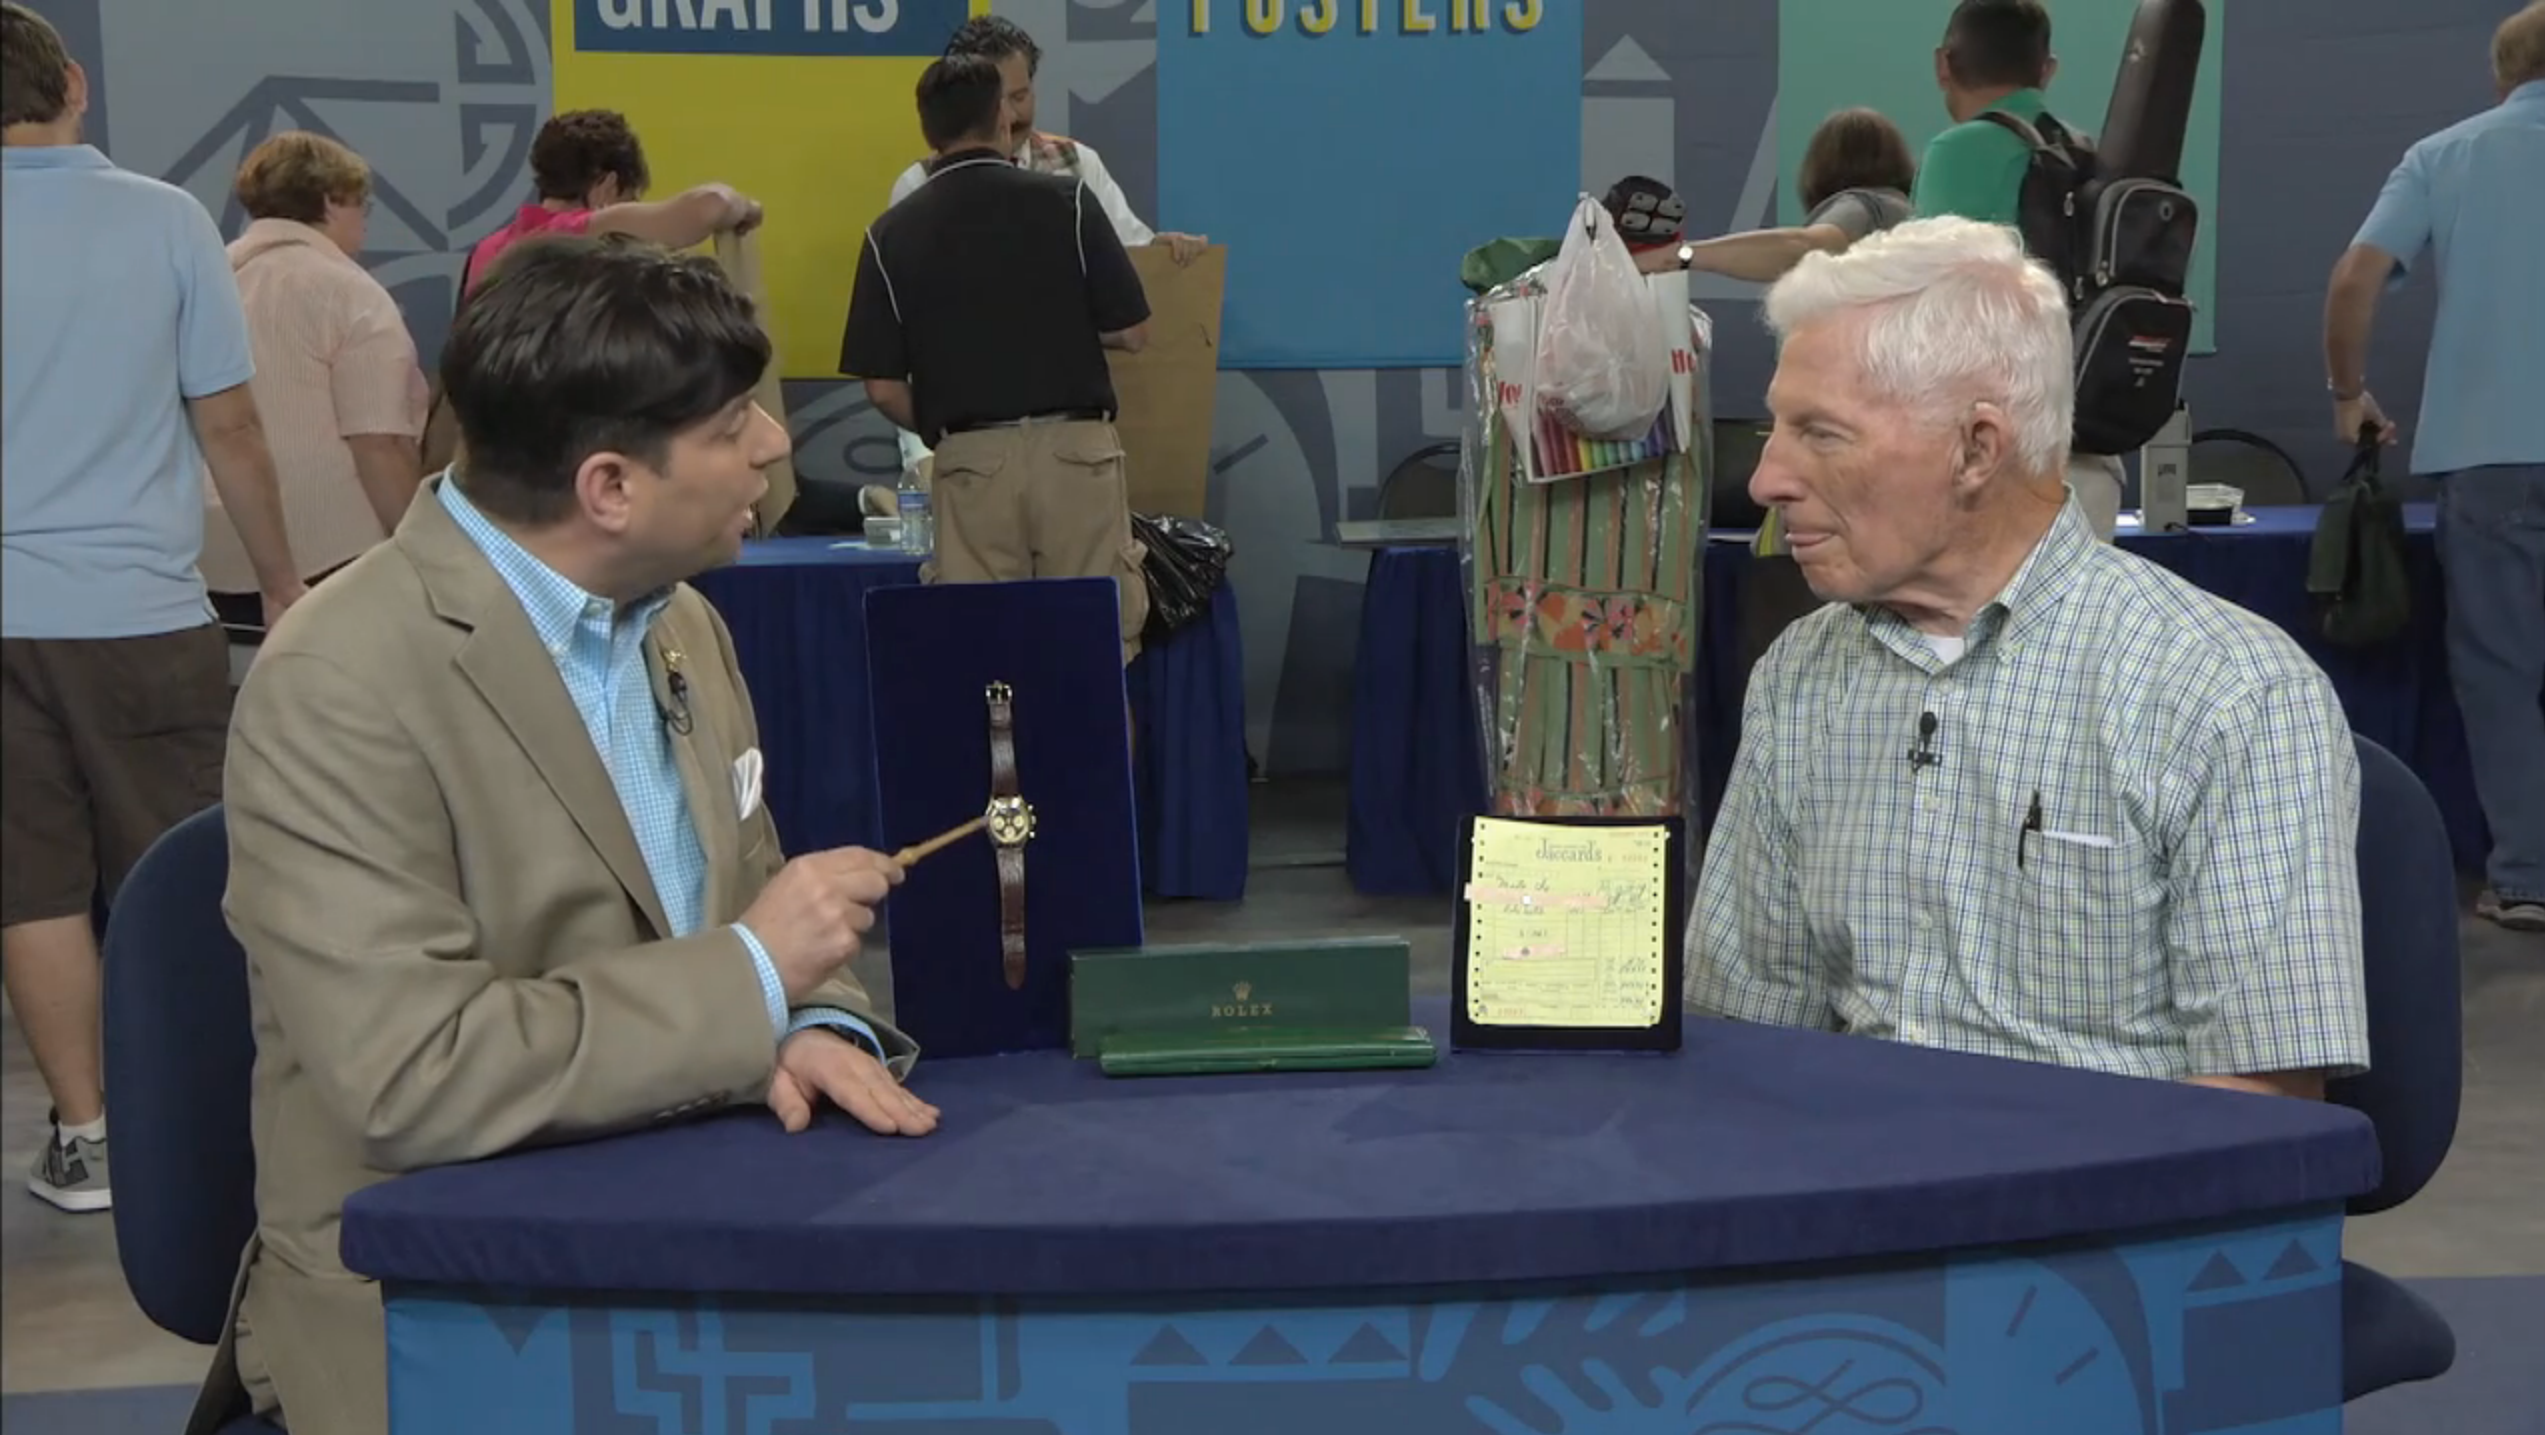 Man Buys Rolex Daytona For $543 in 1973, Takes It To Antiques Roadshow Where He's Told It's Worth $100,000, Though Actually Worth Even More (Oh, And It's Now For Sale) Screen Shot 2016 04 20 at 1